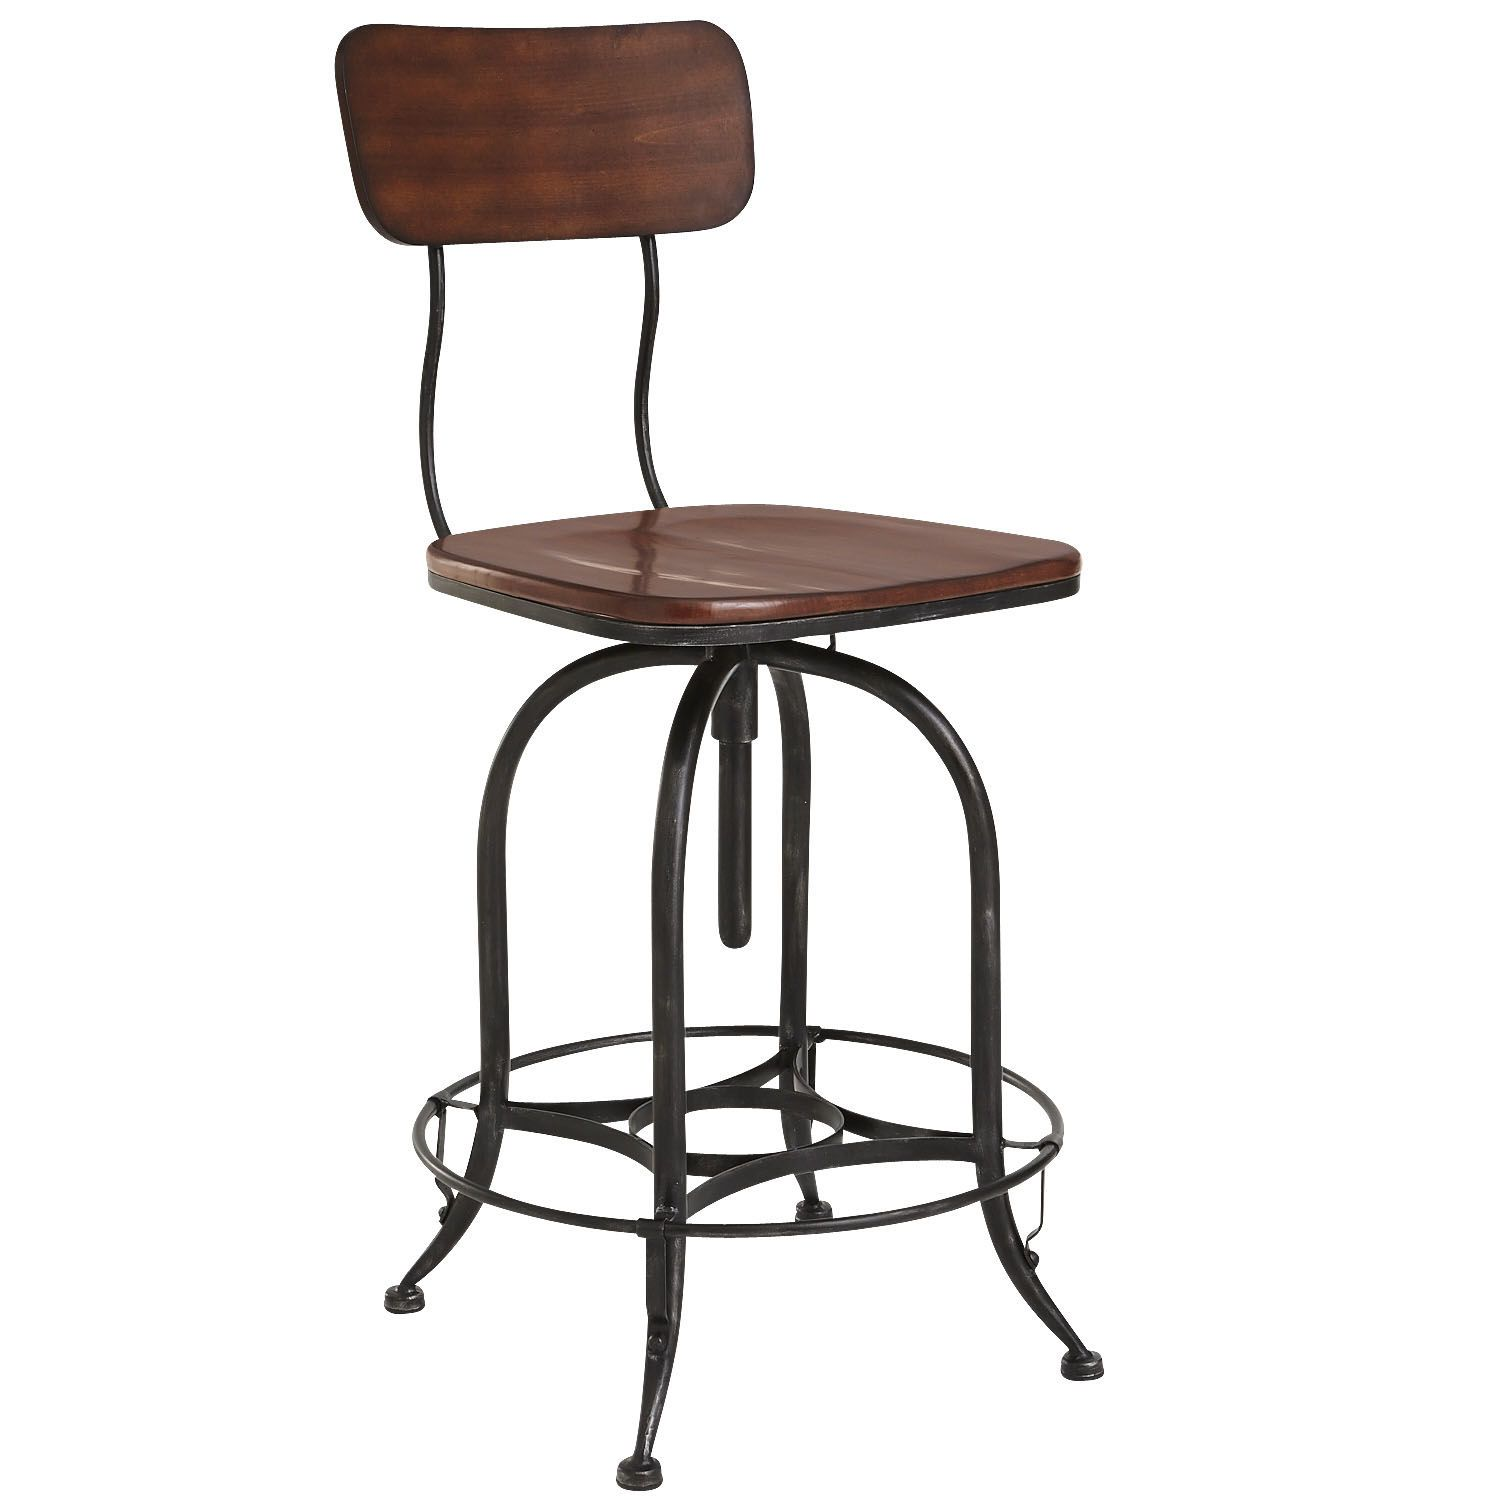 bar stools counter pier 1. Stanford Swivel Counterstool - Wood $170 On Sale At Pier One. Counter StoolsBar Bar Stools 1